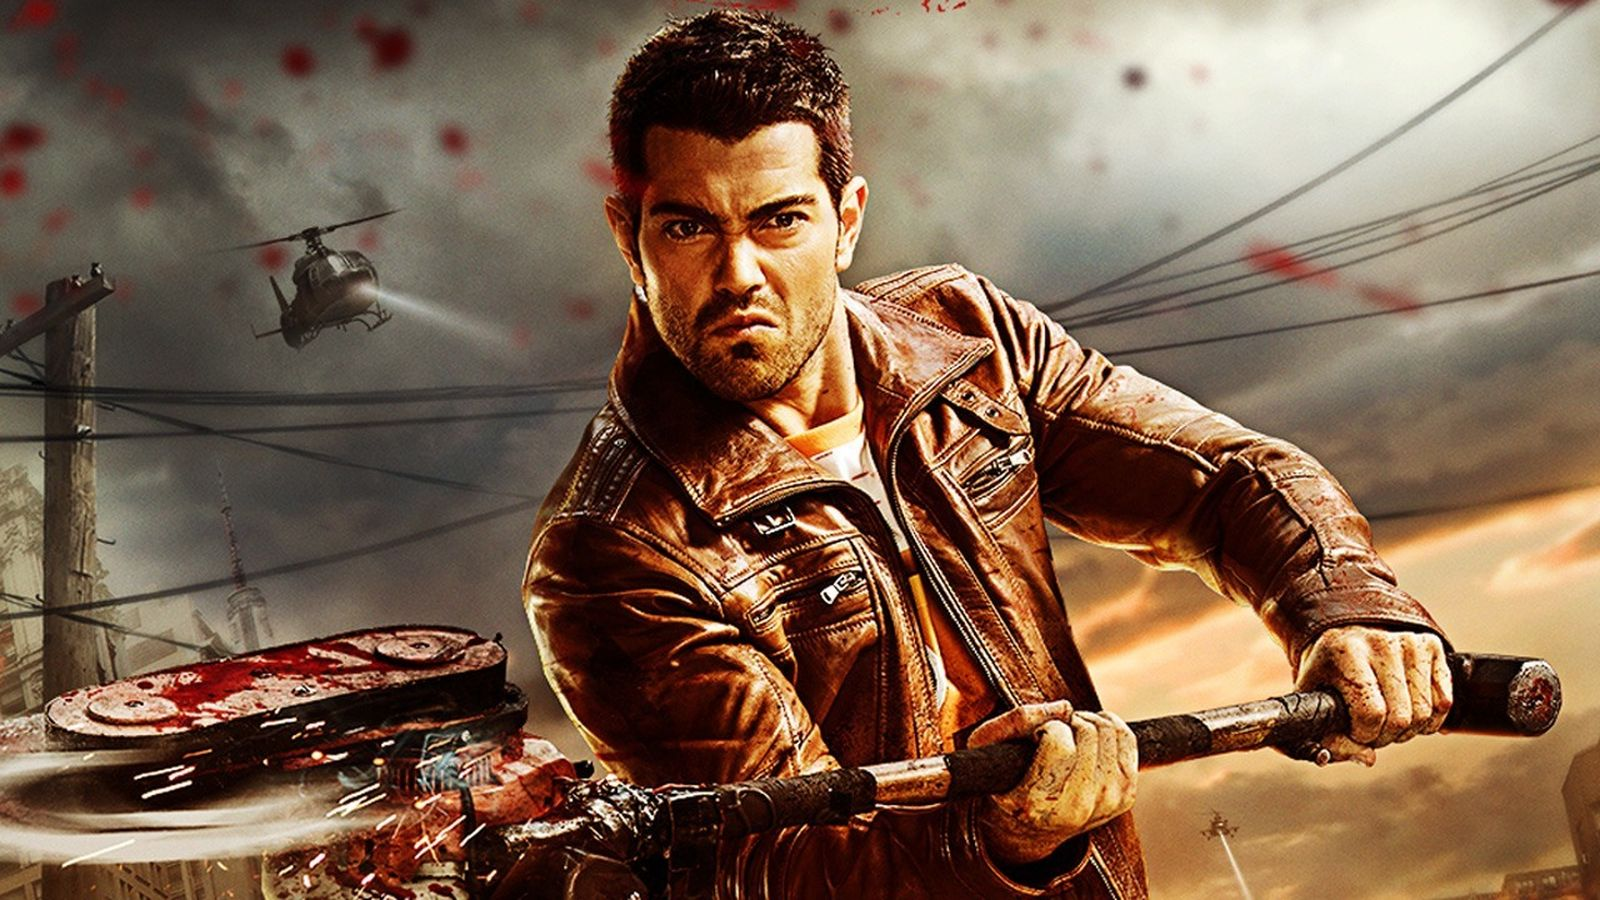 Dead Rising - End Game - Netflix